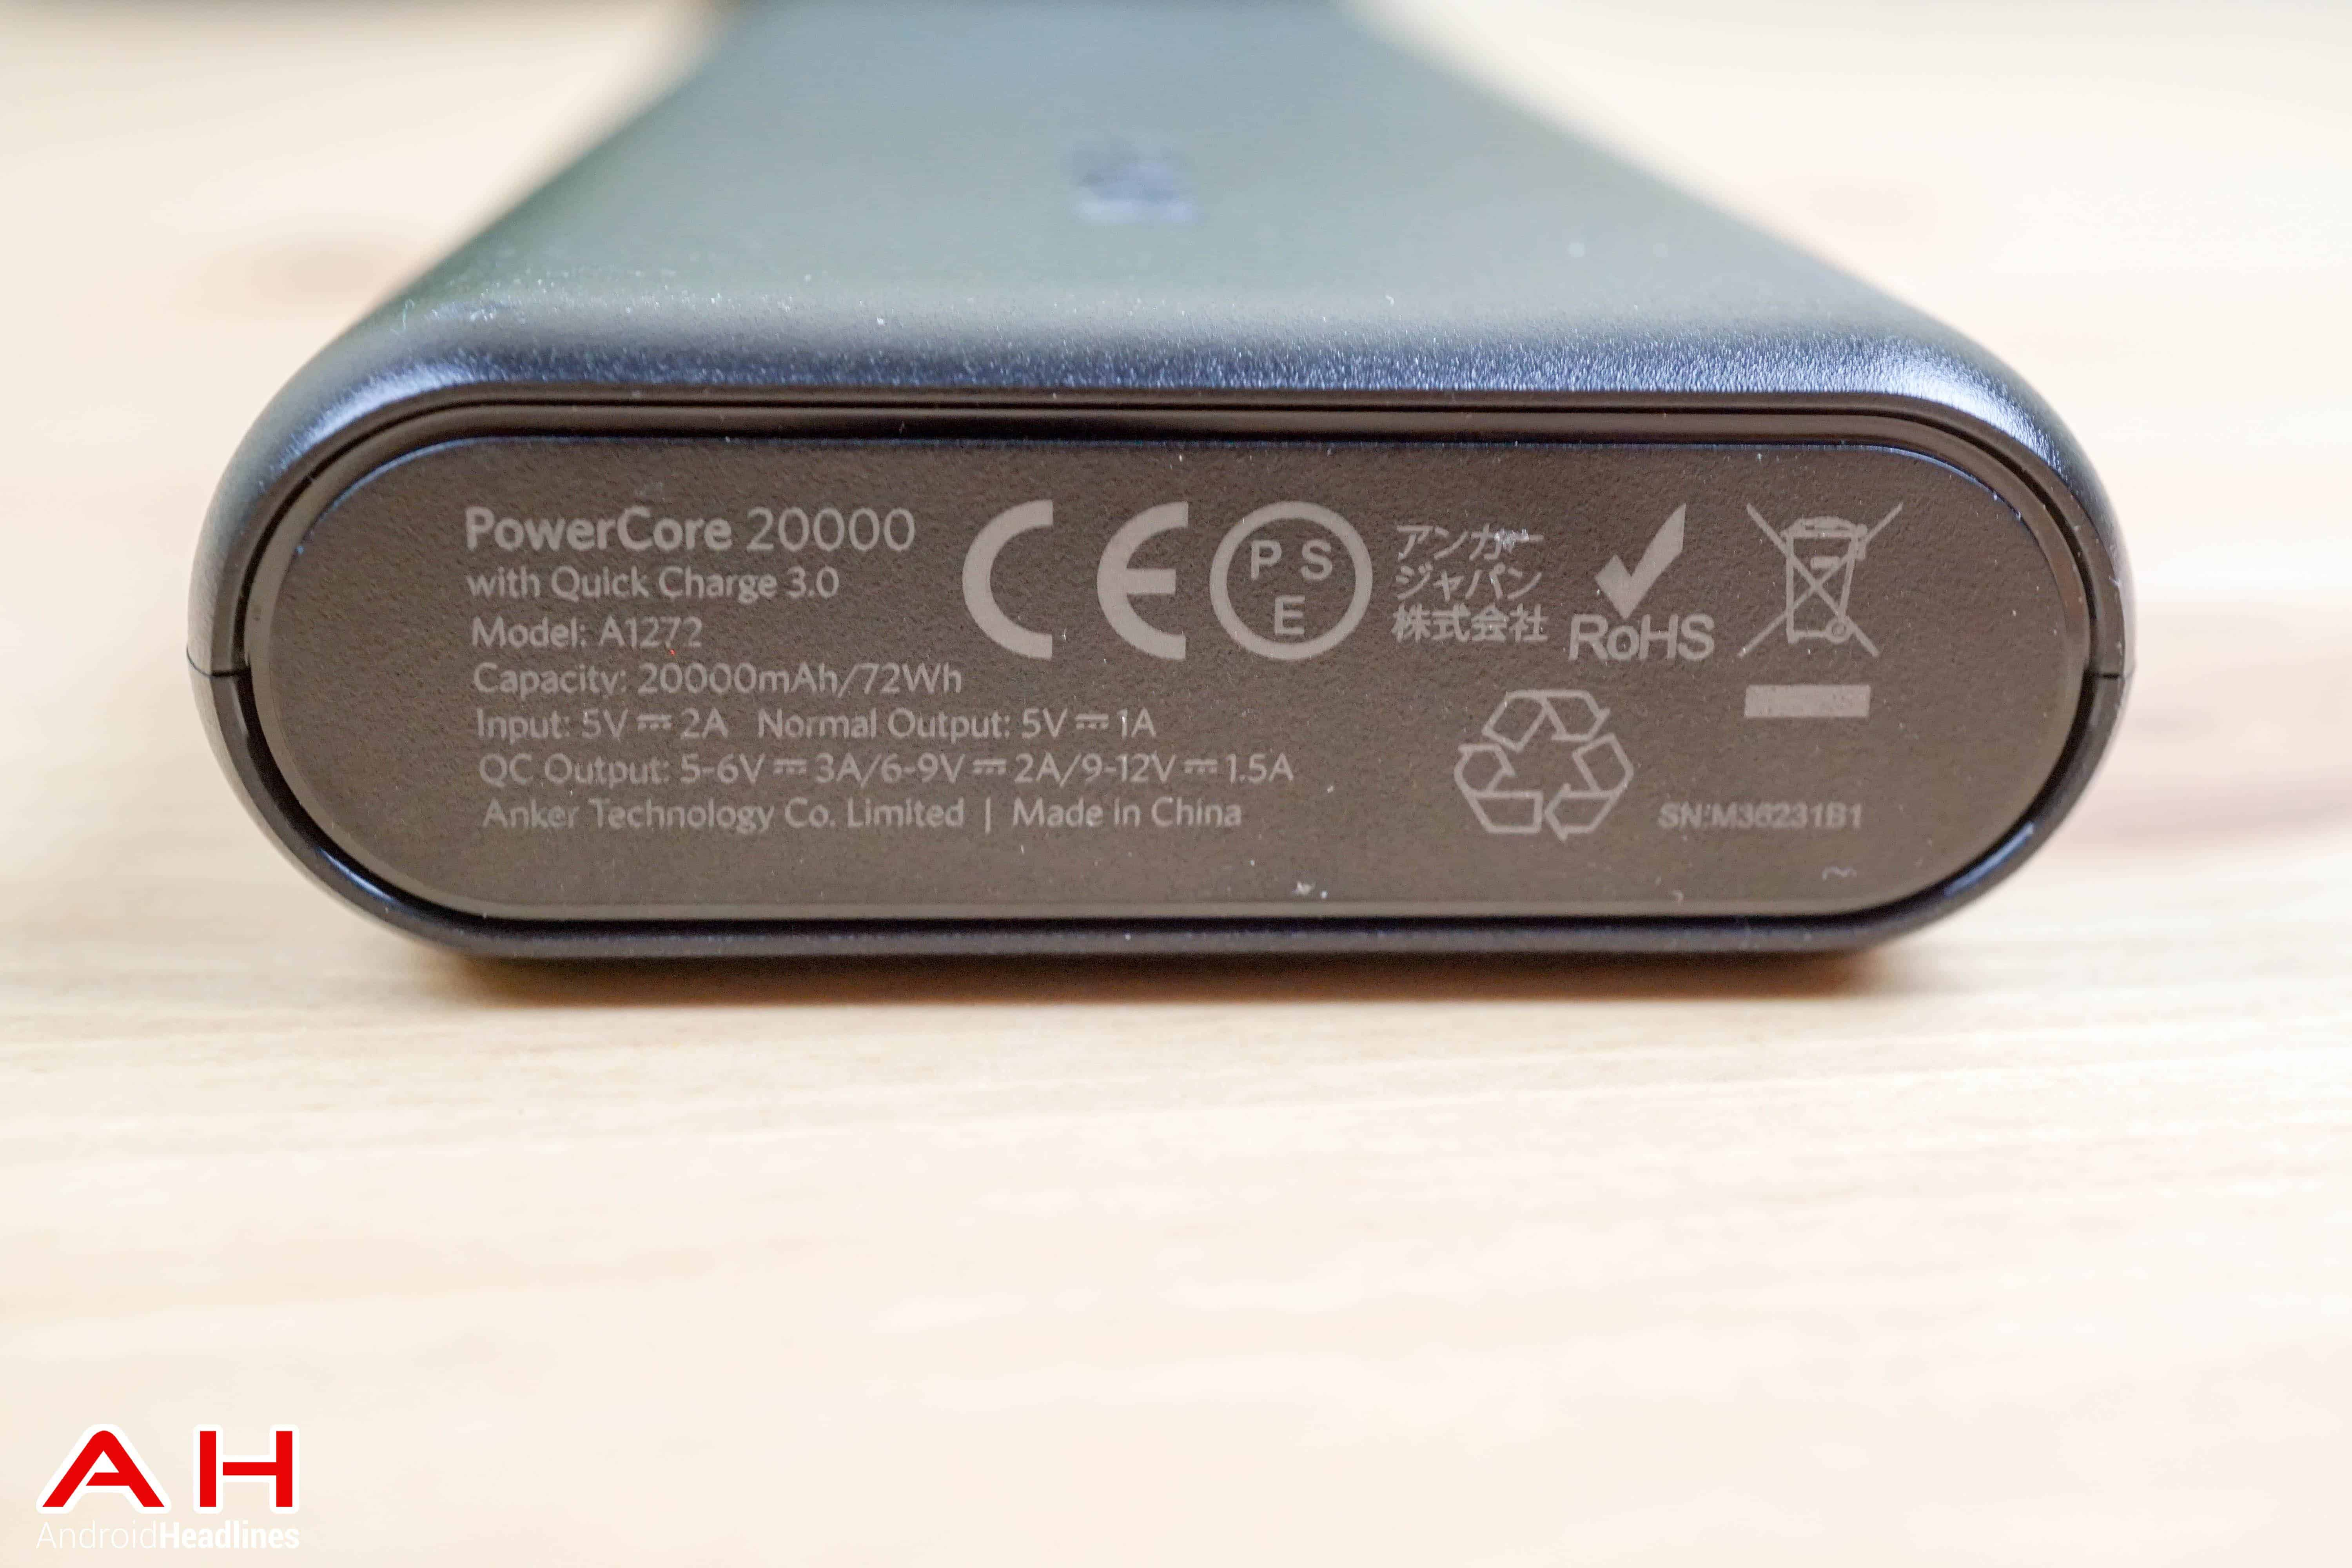 Anker PowerCore 20000 AH 4